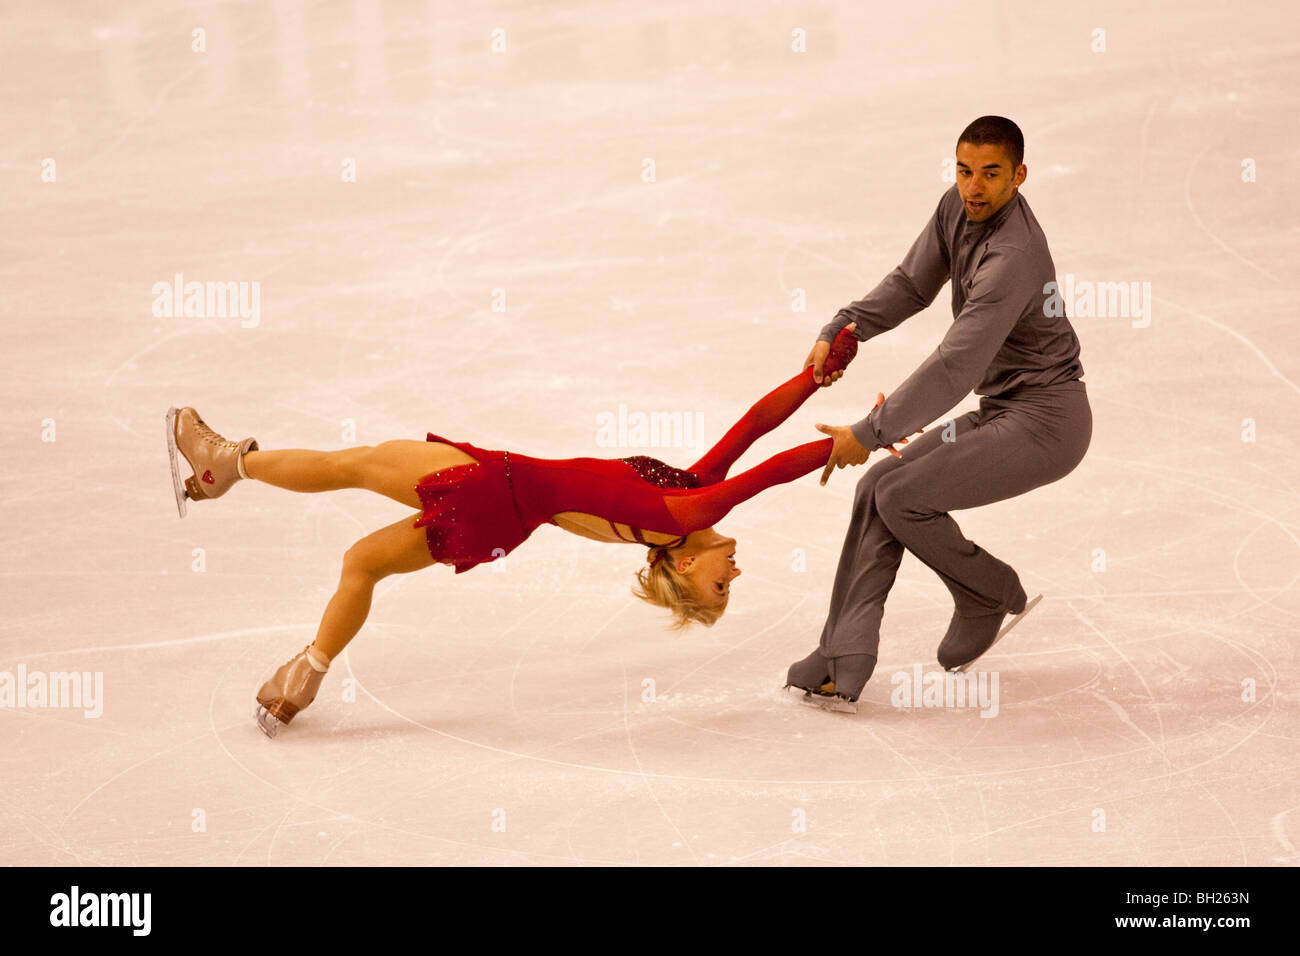 Aliona Savchenko/Robin Szolkowy, gold medalist competing in the Pairs Free at the 2009 World Figure Skating Championships - Stock Image